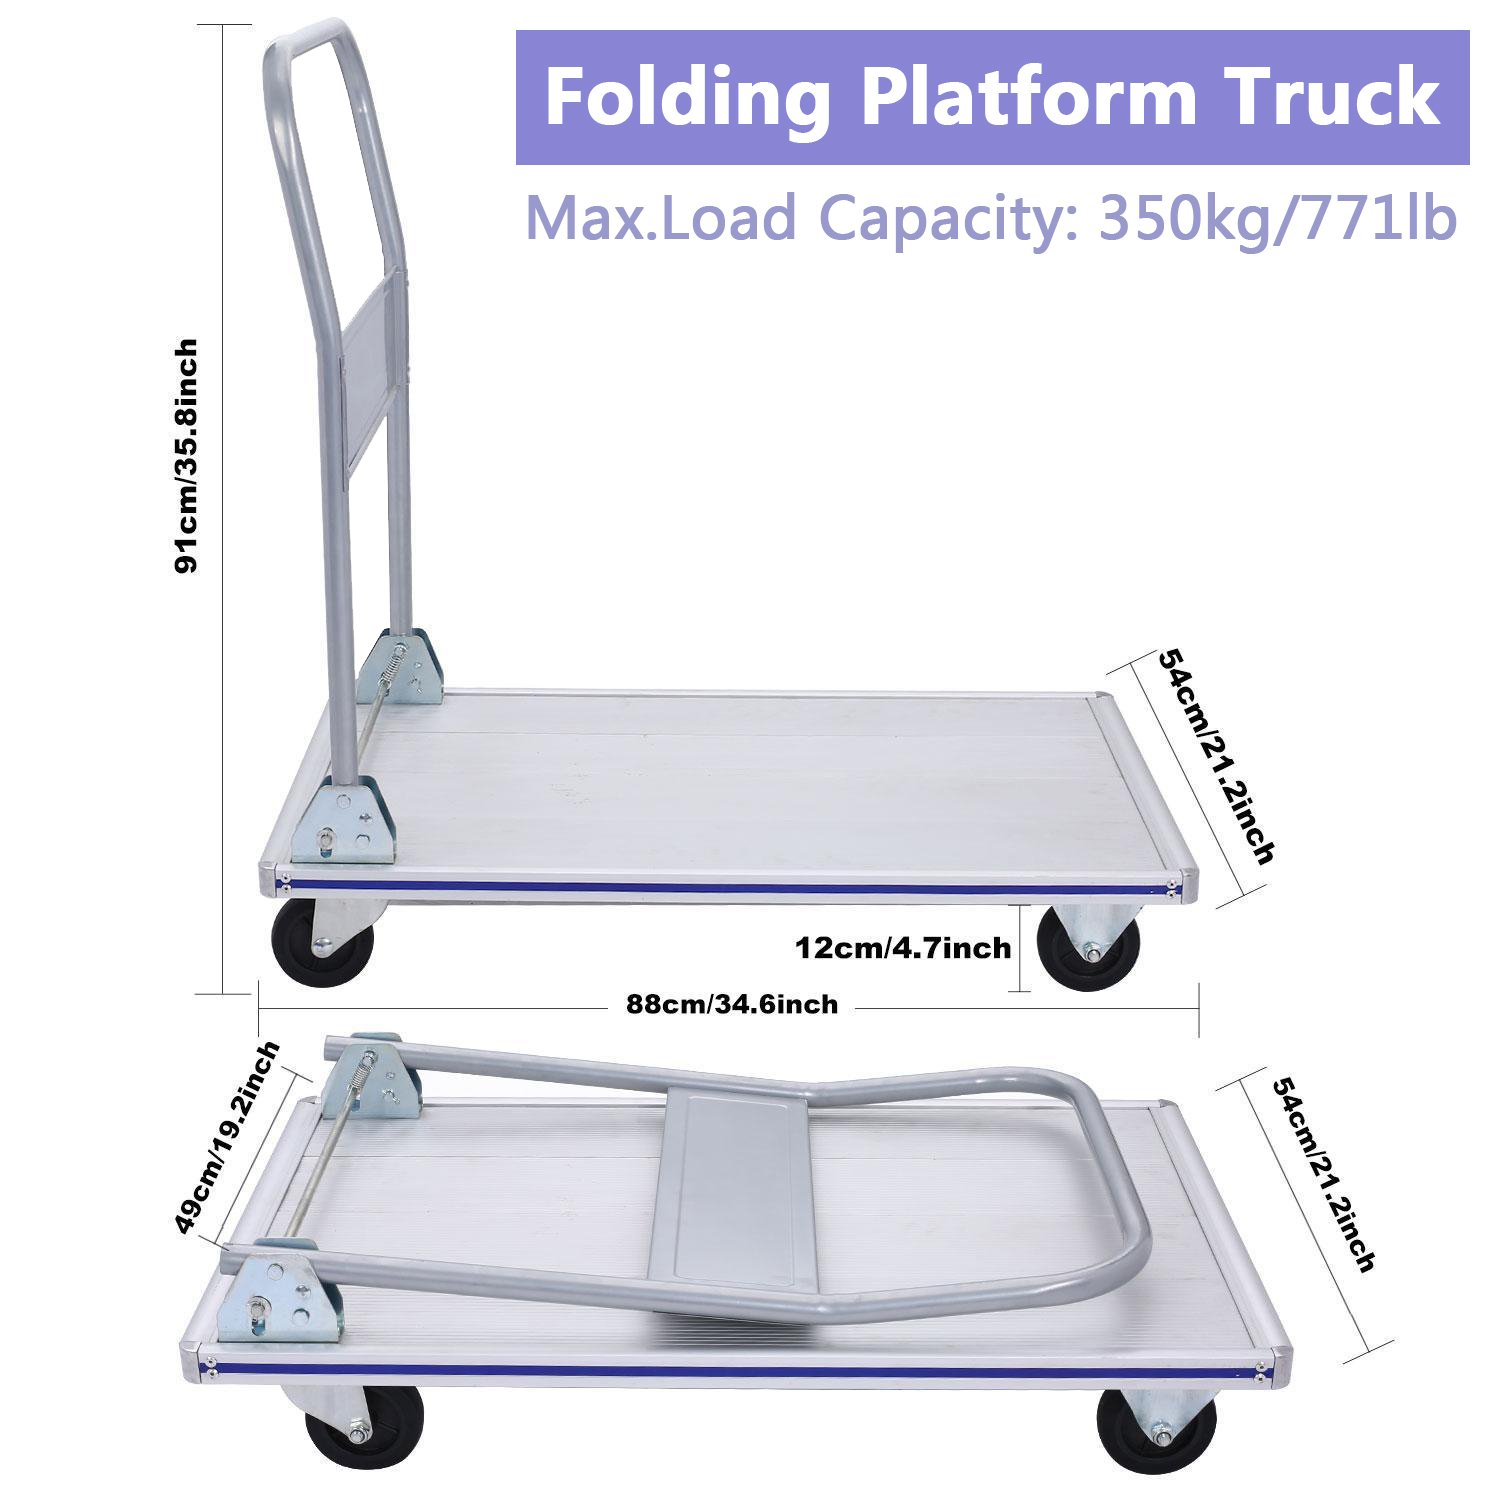 Folding Metal Platform Truck Aluminum Hand Cart, 4 Wheels Heavy Duty Flatbed Moving Push Cart Dolly with Non-Marking Polyurethane Casters, 771 lbs Capacity (US STOCK)